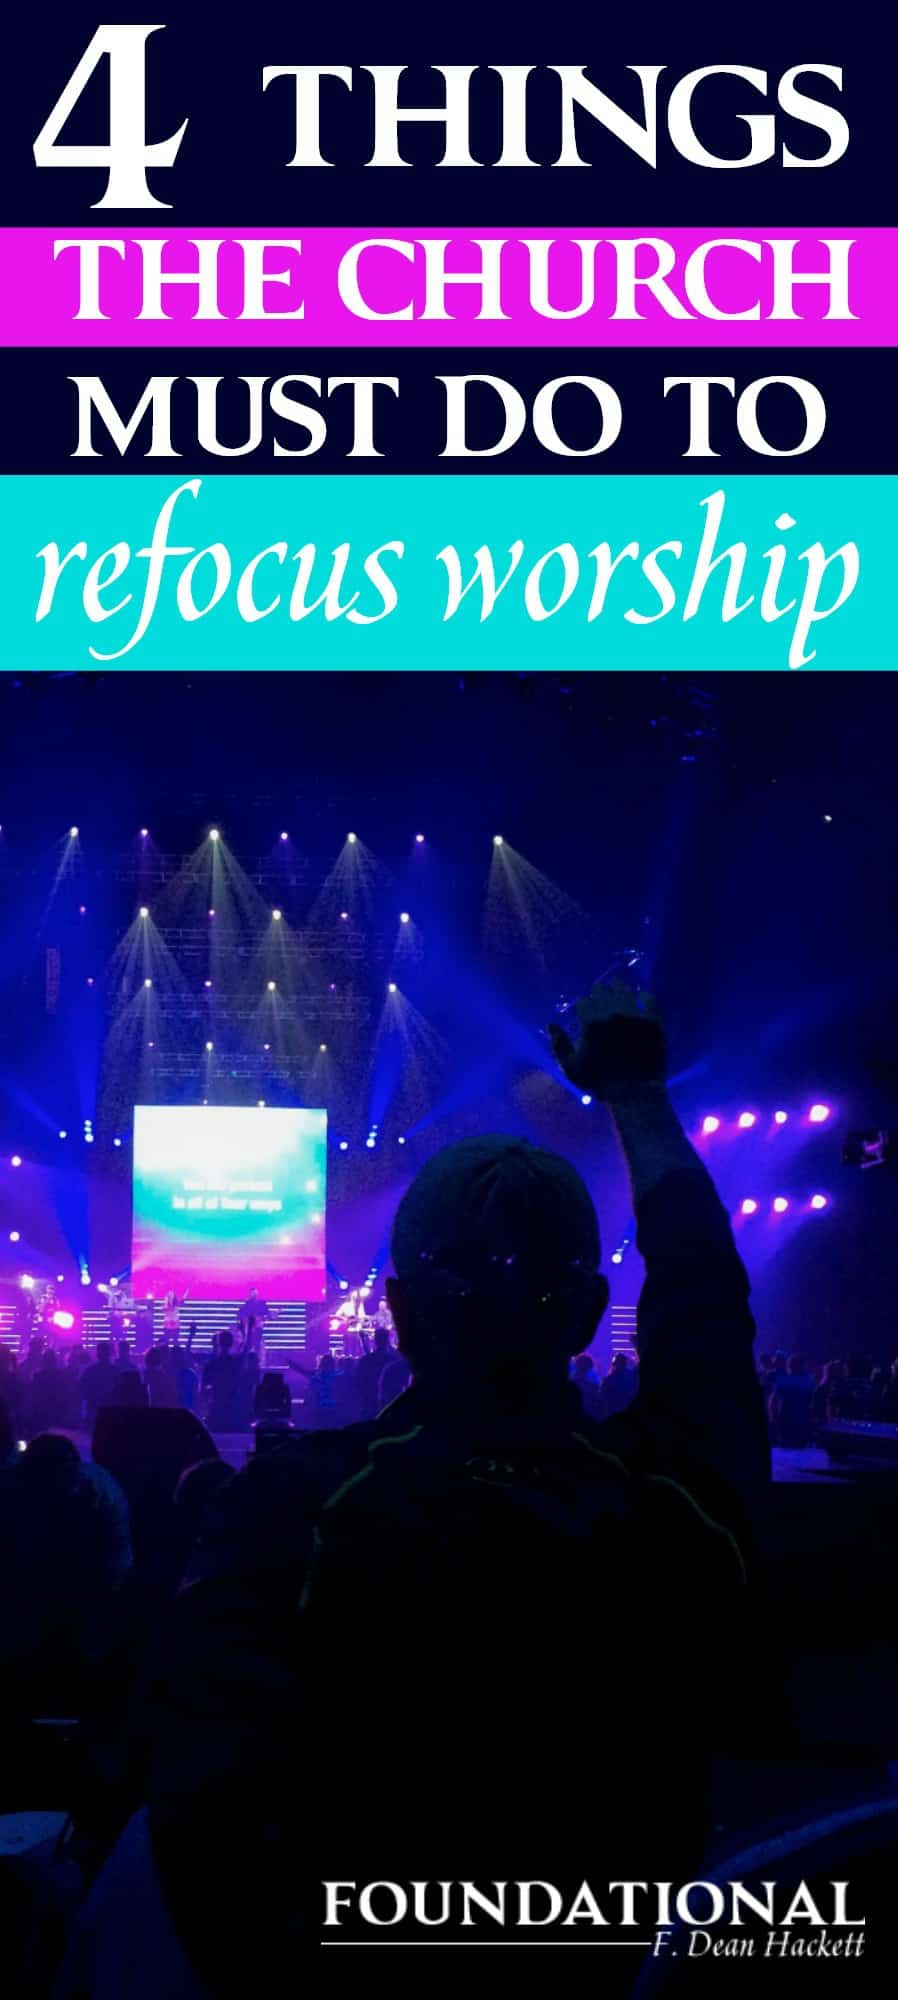 There are 4 things the church must start doing now to replace what's been missing and return the focus of worship back to Jesus Christ.